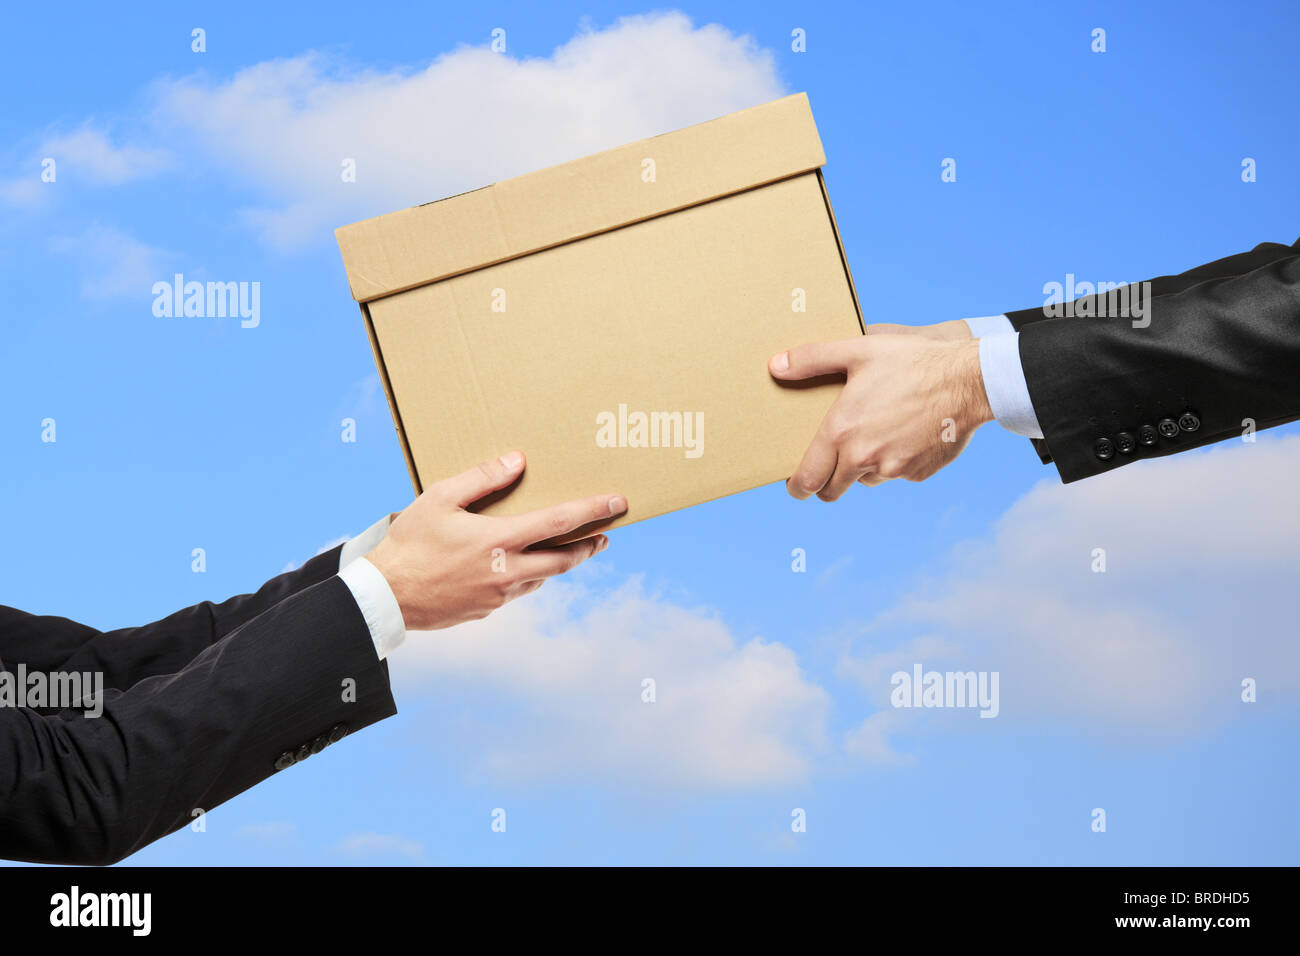 A businessman delivering a package to a man - Stock Image